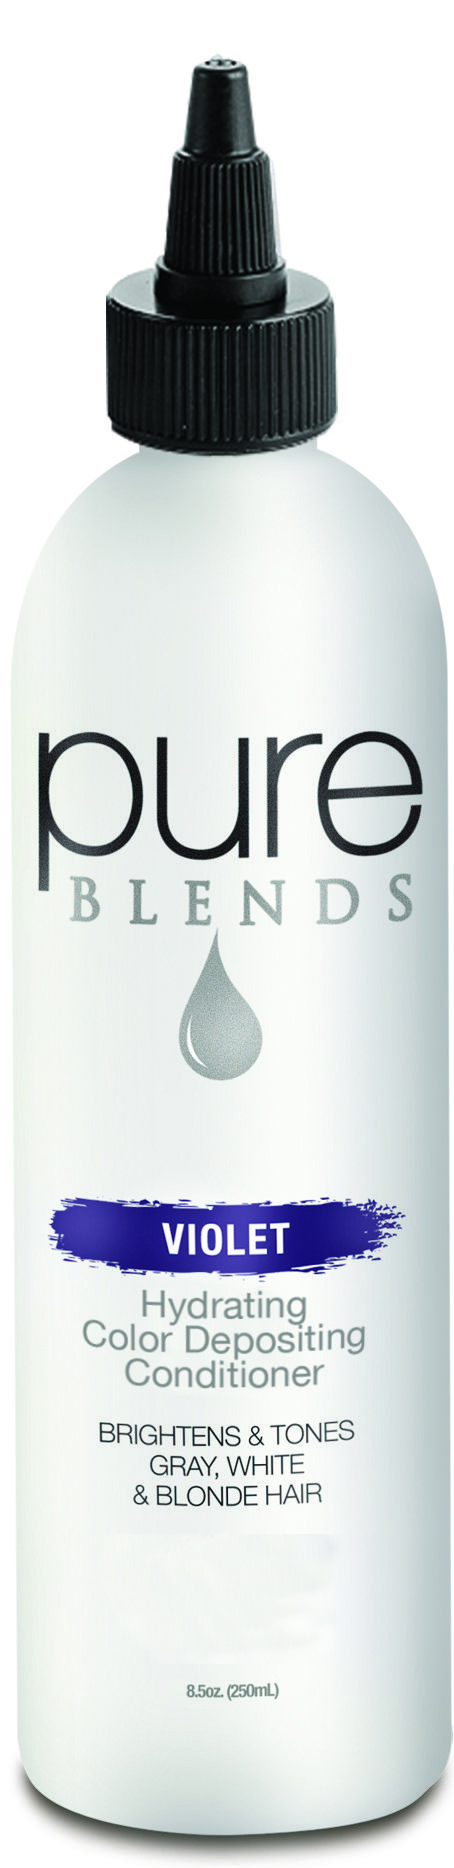 Pure Blends Hydrating Color Depositing Shampoo Marigold